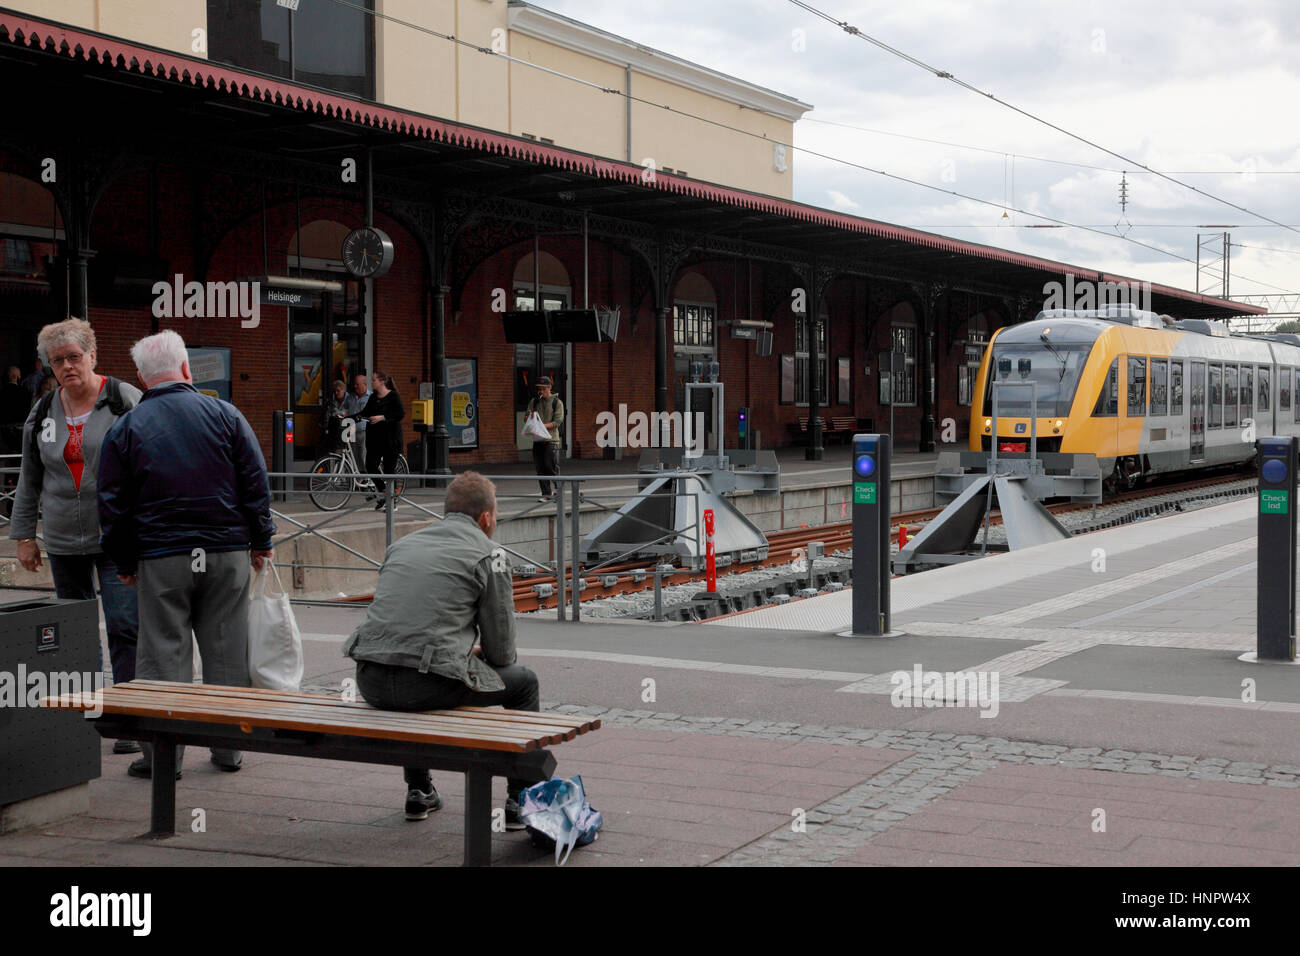 A train standing in the station at Helsingor, Denmark Stock Photo